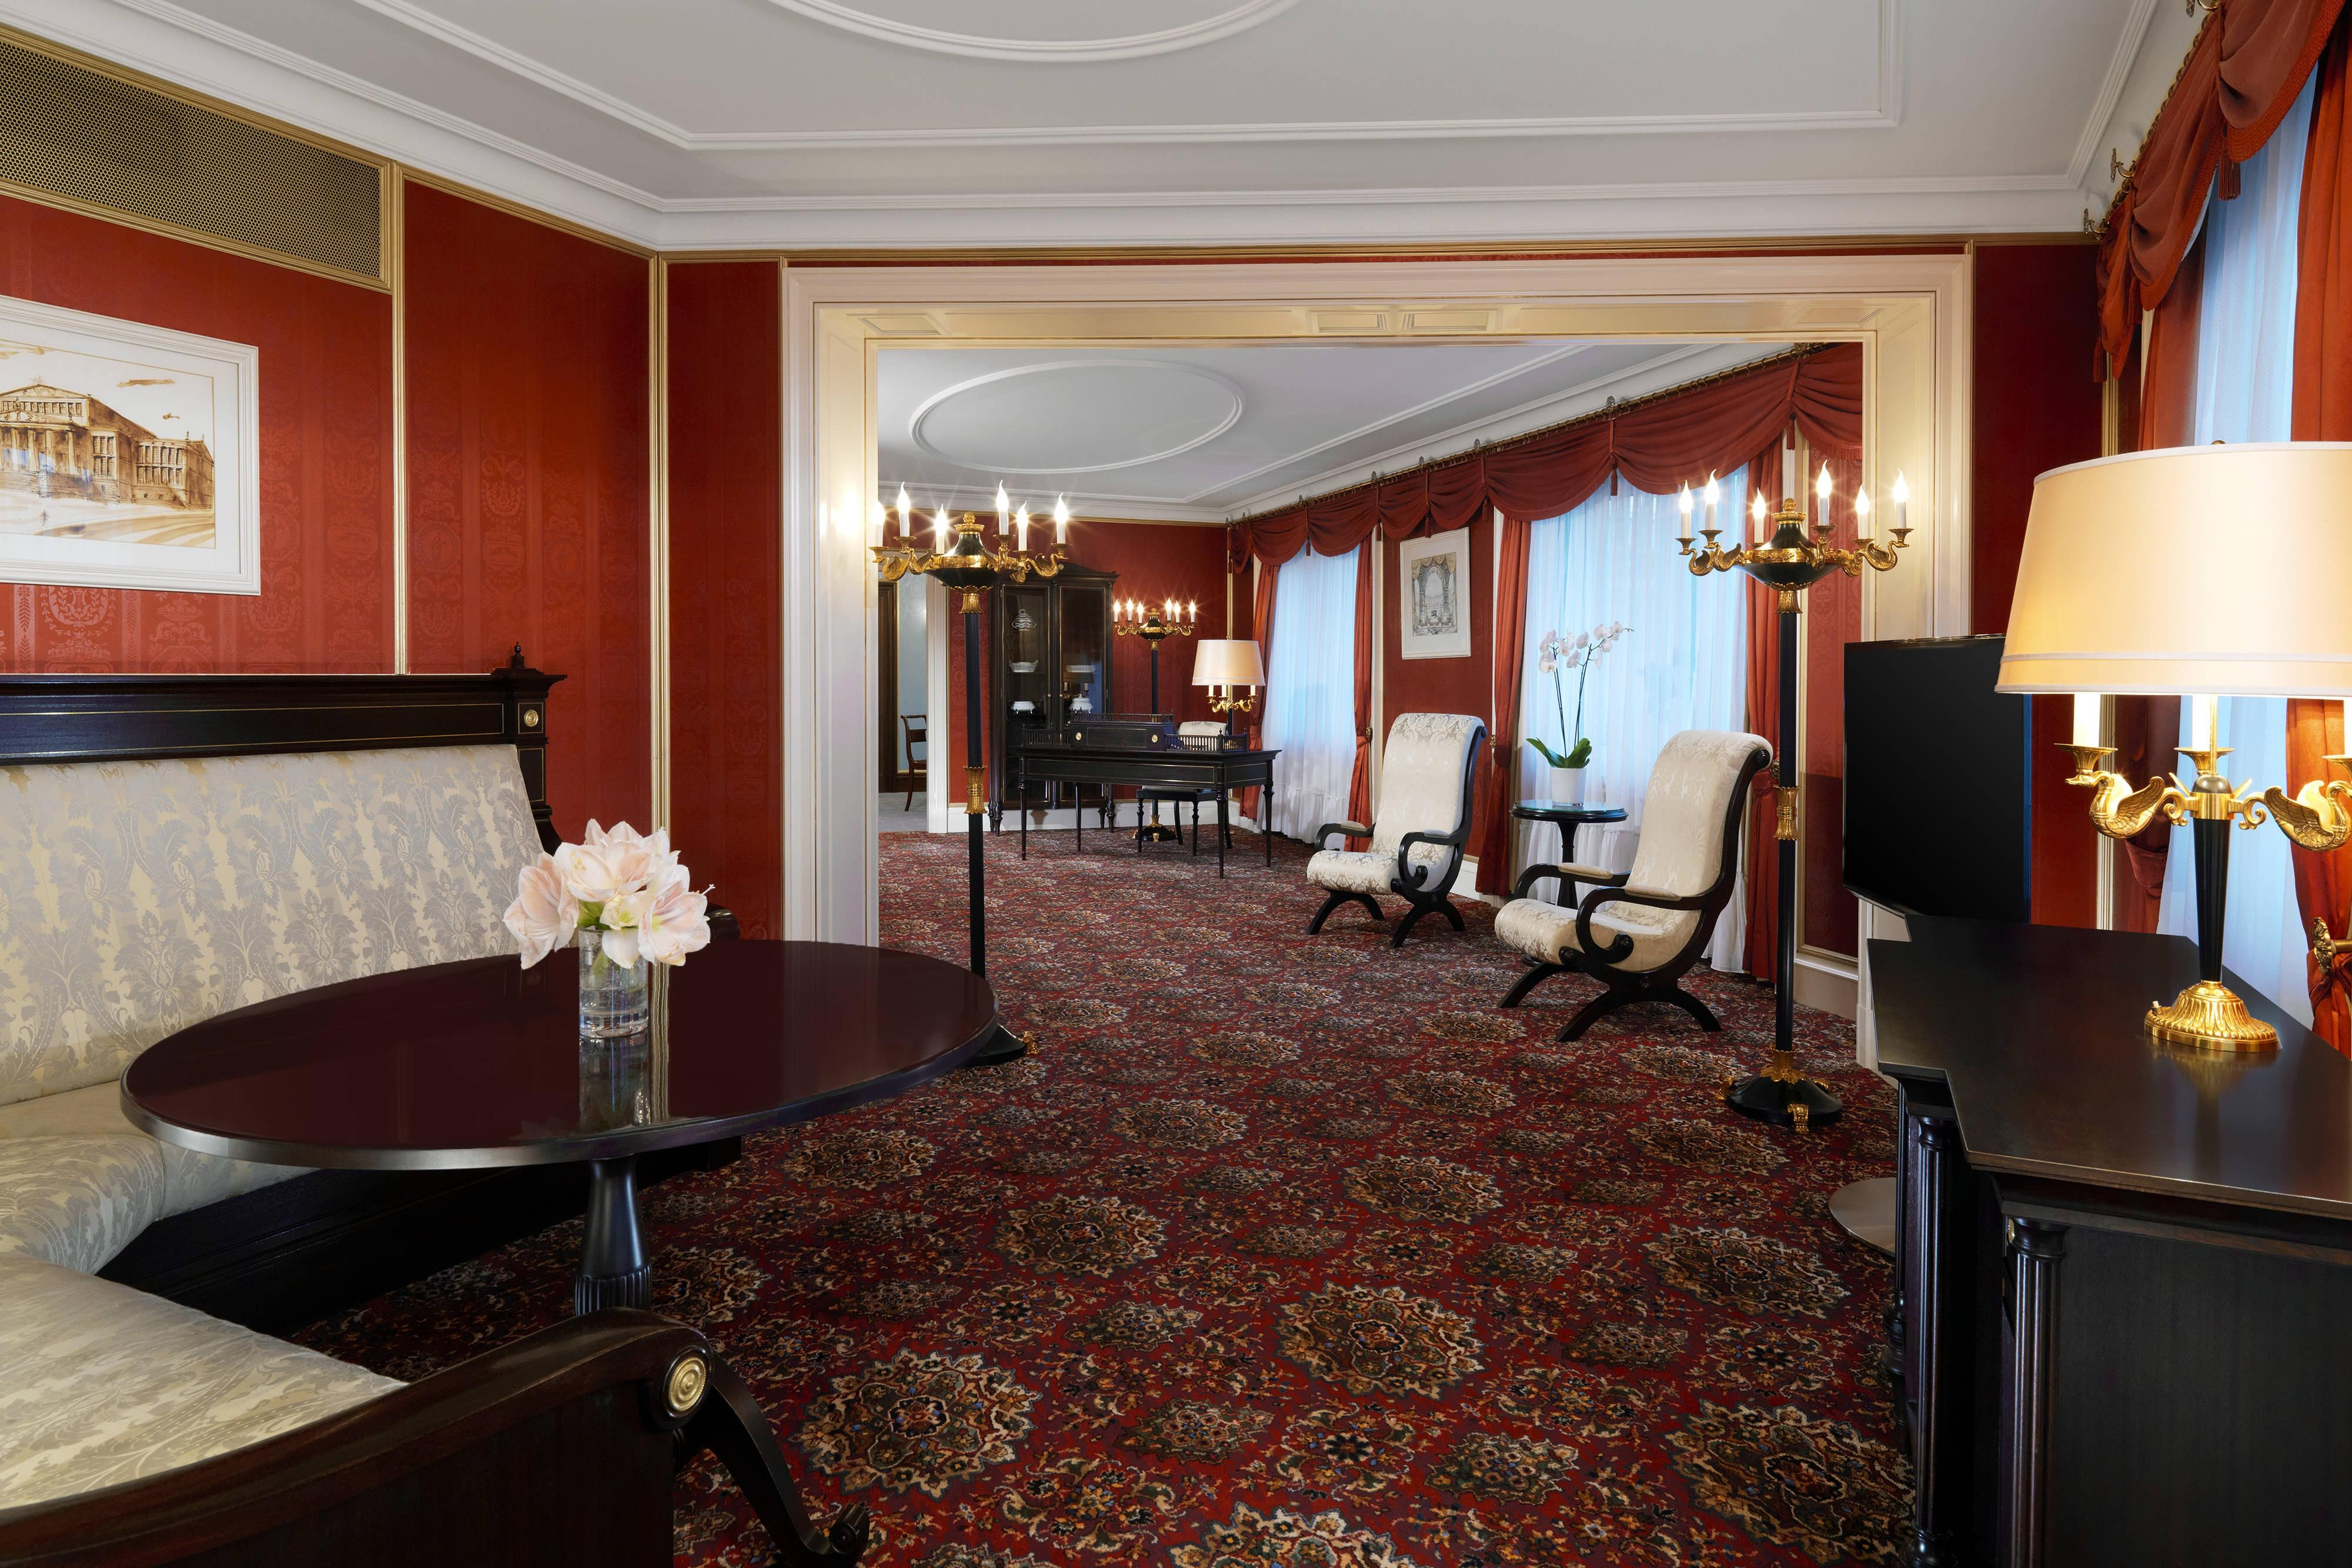 Presidential Suite living area at The Westin hotel in Berlin